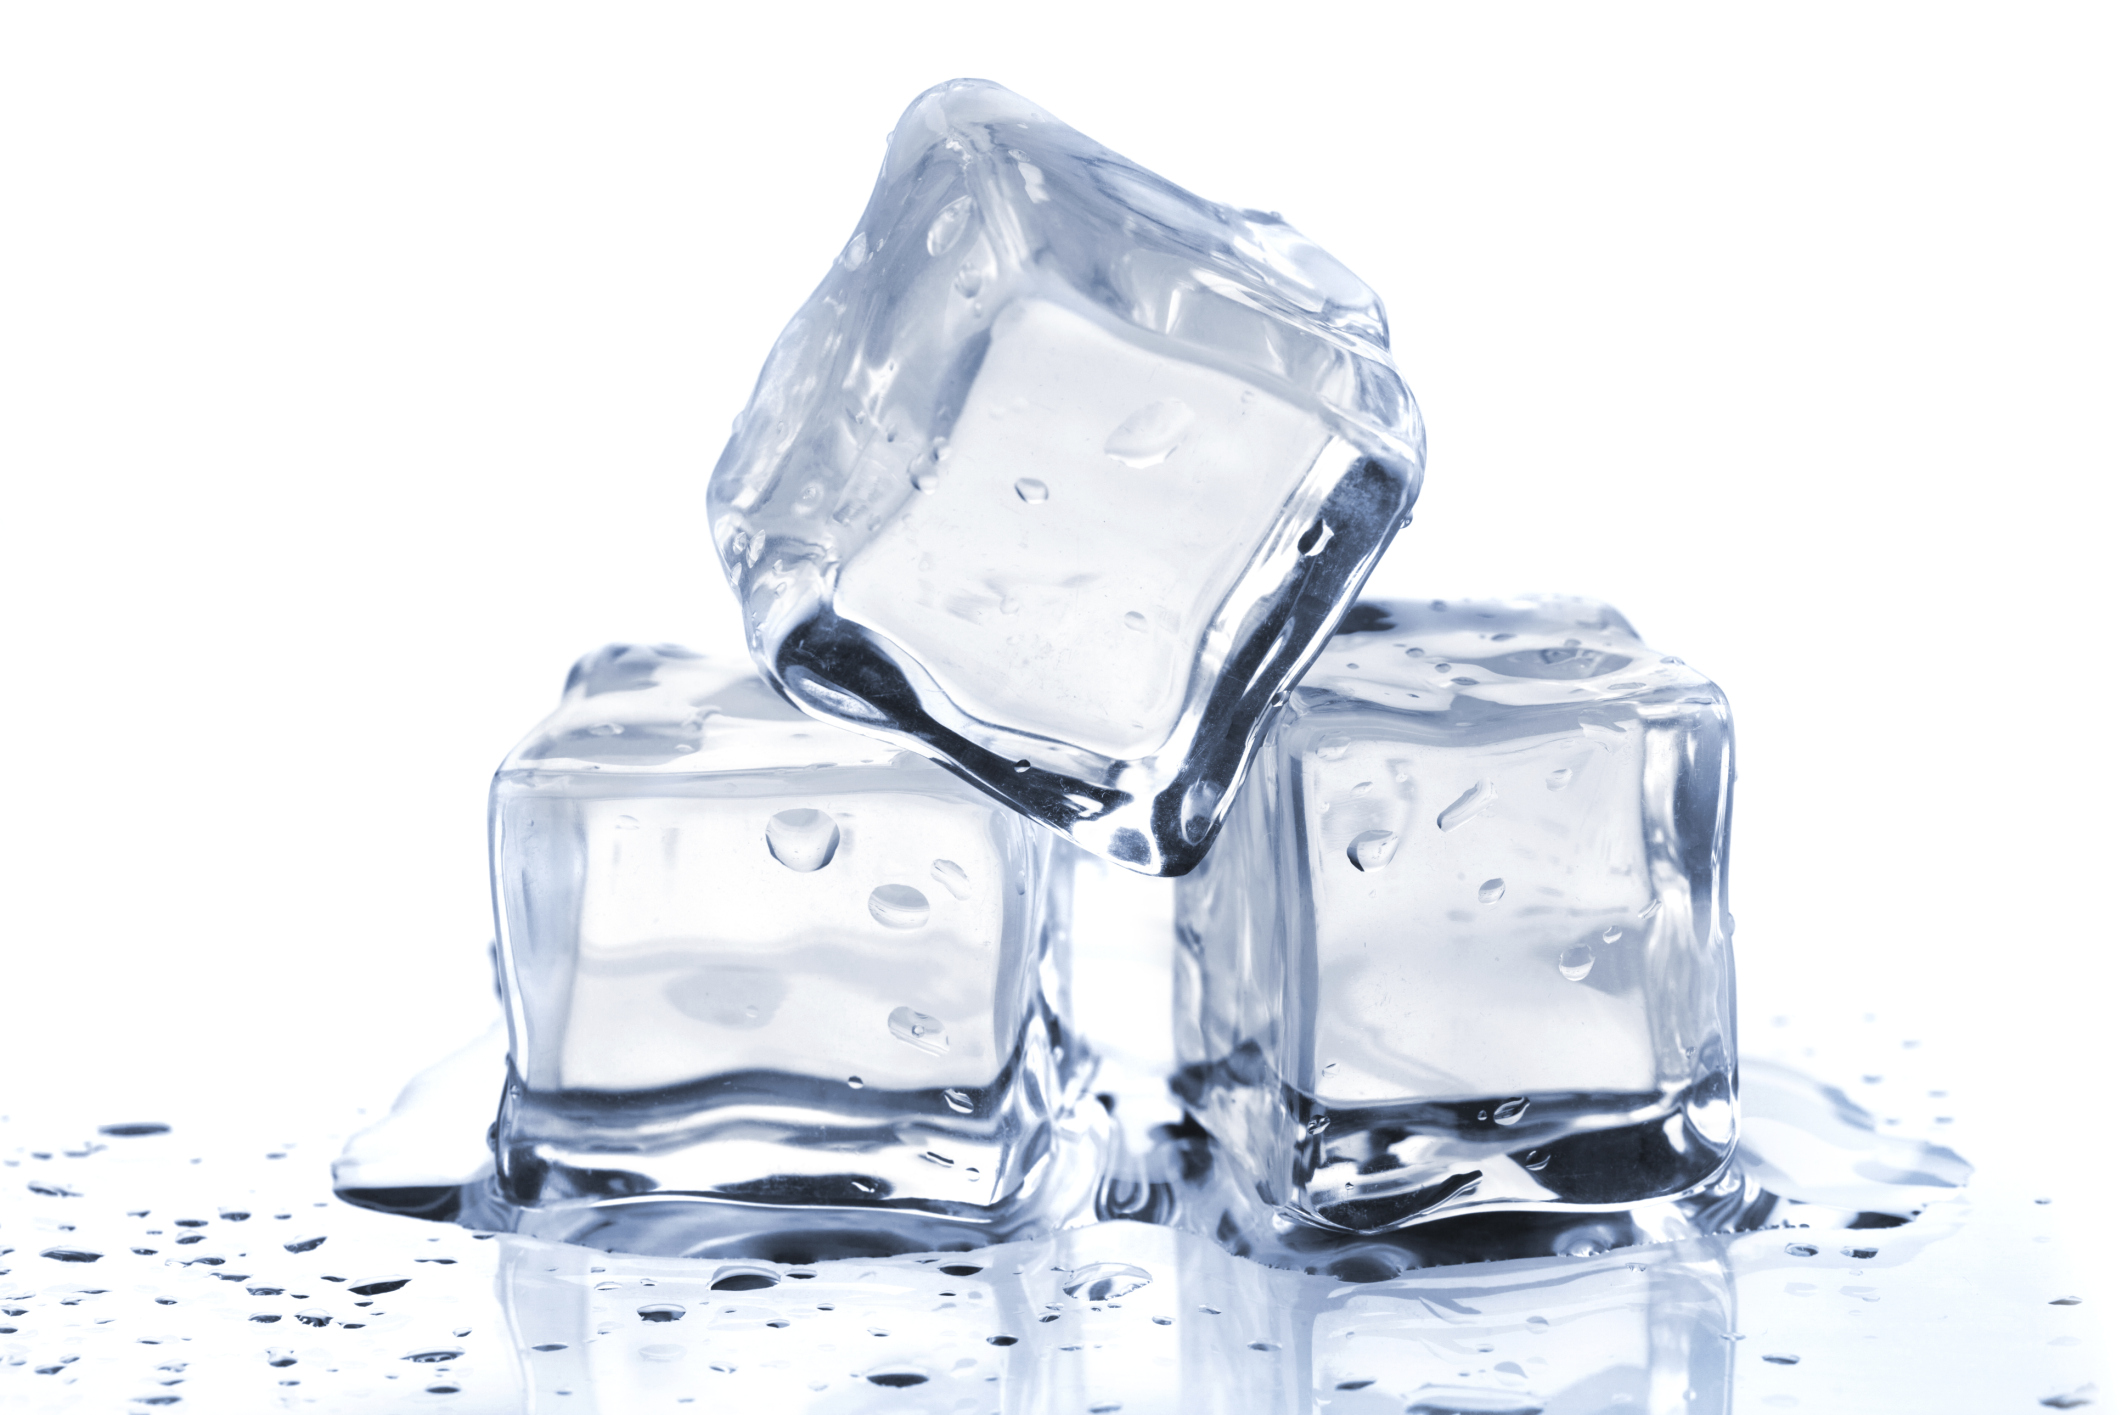 the problem of the ice melting Discuss ice melting and refreezing in refrigerator & freezer repair my freezer is either getting too hot at defrost or staying in defrost too long as my ice.